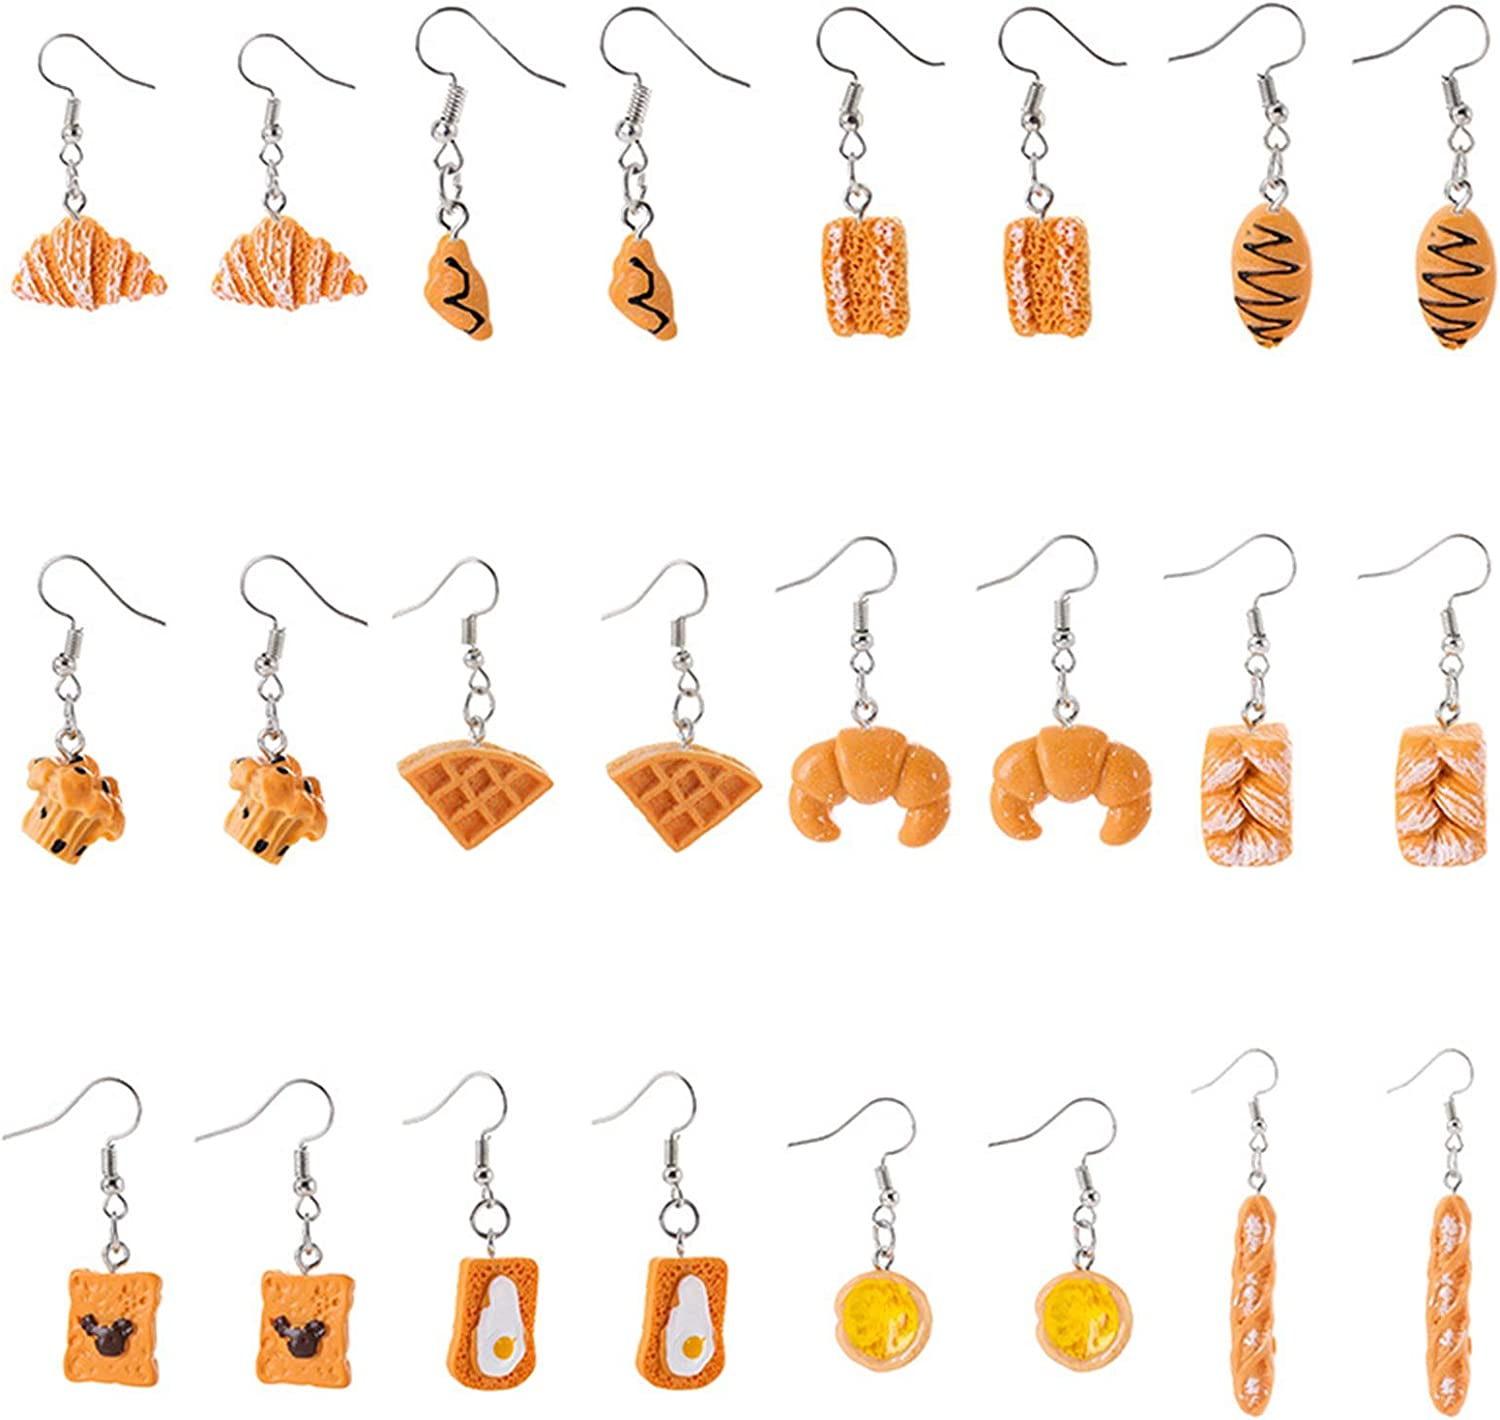 Cute 12 Pairs Handmade Simulation Food Dangle Drop Earrings Set Unique Lifelike Waffle Croissant Baguette Cupcake Croissant French Bread Toast Egg Tart Drop Earrings Set for Women Girls Jewelry Gifts